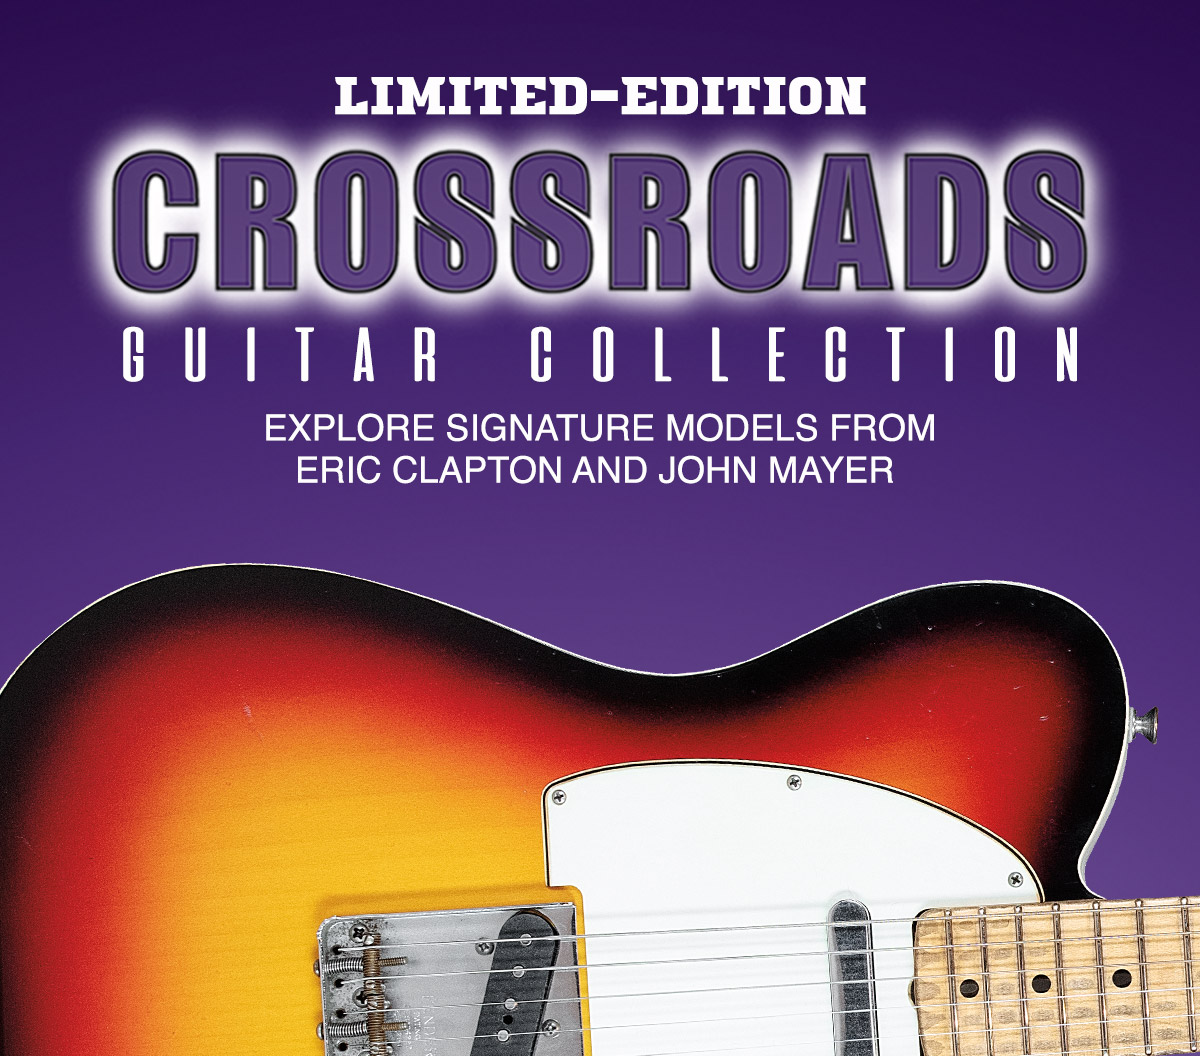 Limited edition Crossroads guitar collection. Explore signature models from Eric Clapton and John Mayer.